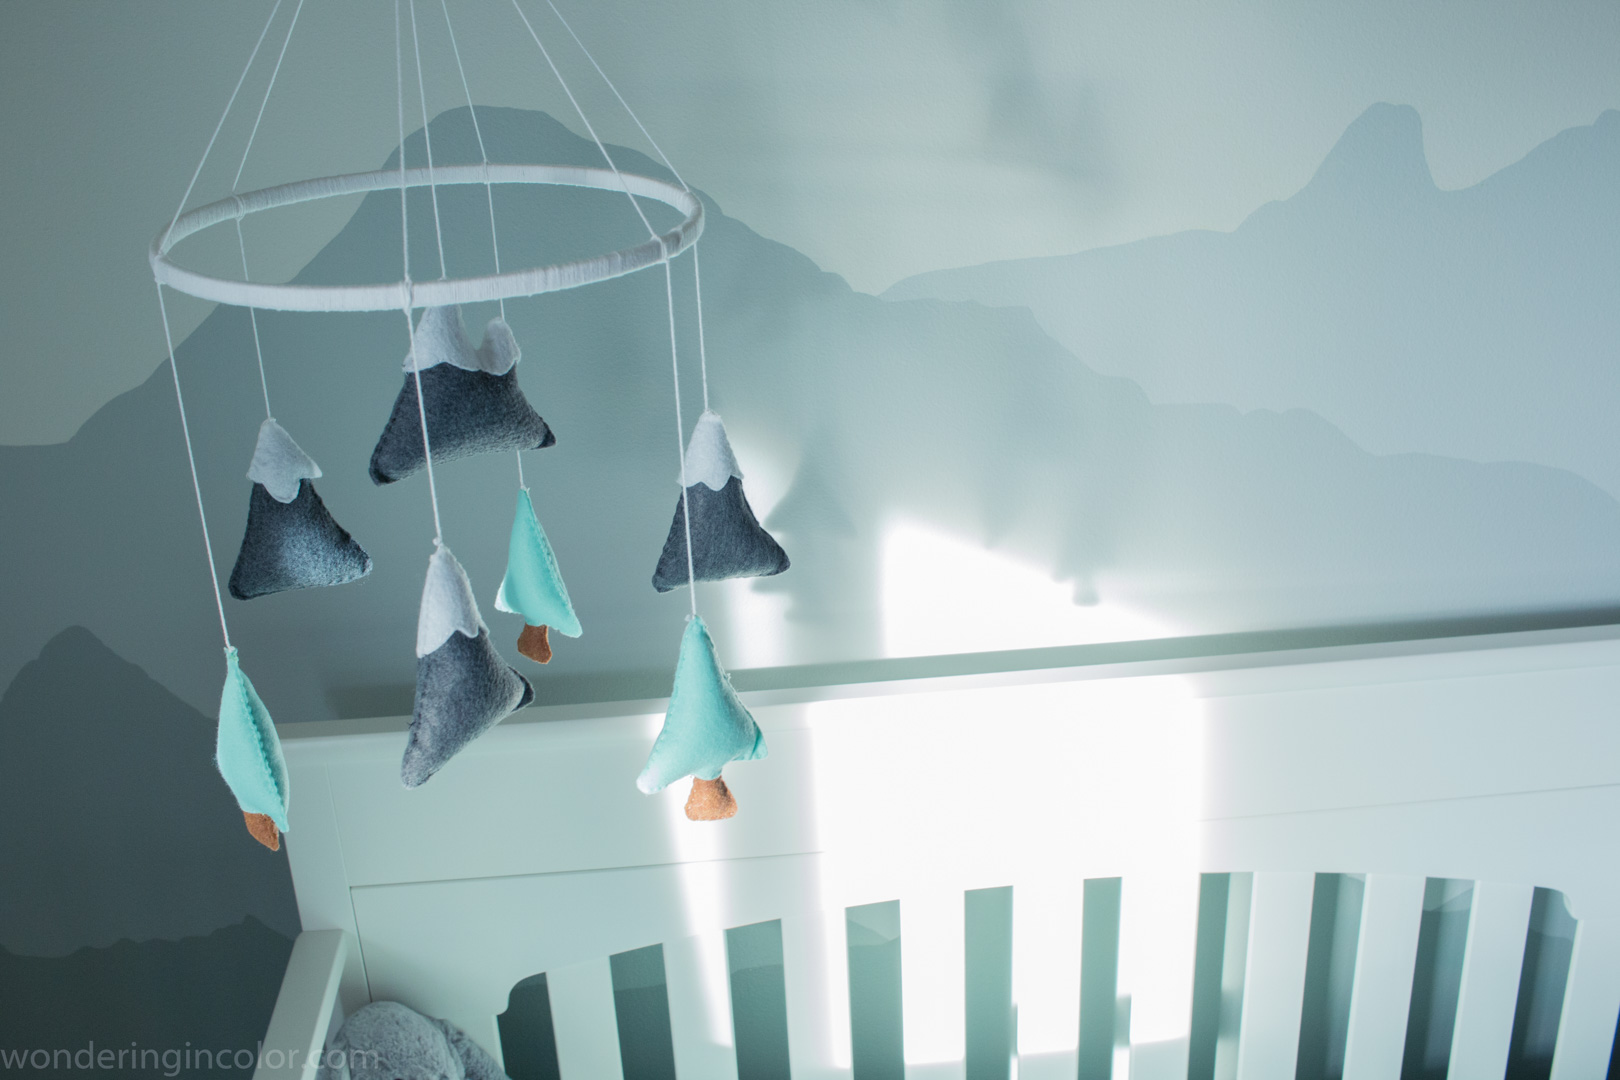 Pacific-northwest-inspired-nursery-styling (4 of 14).jpg